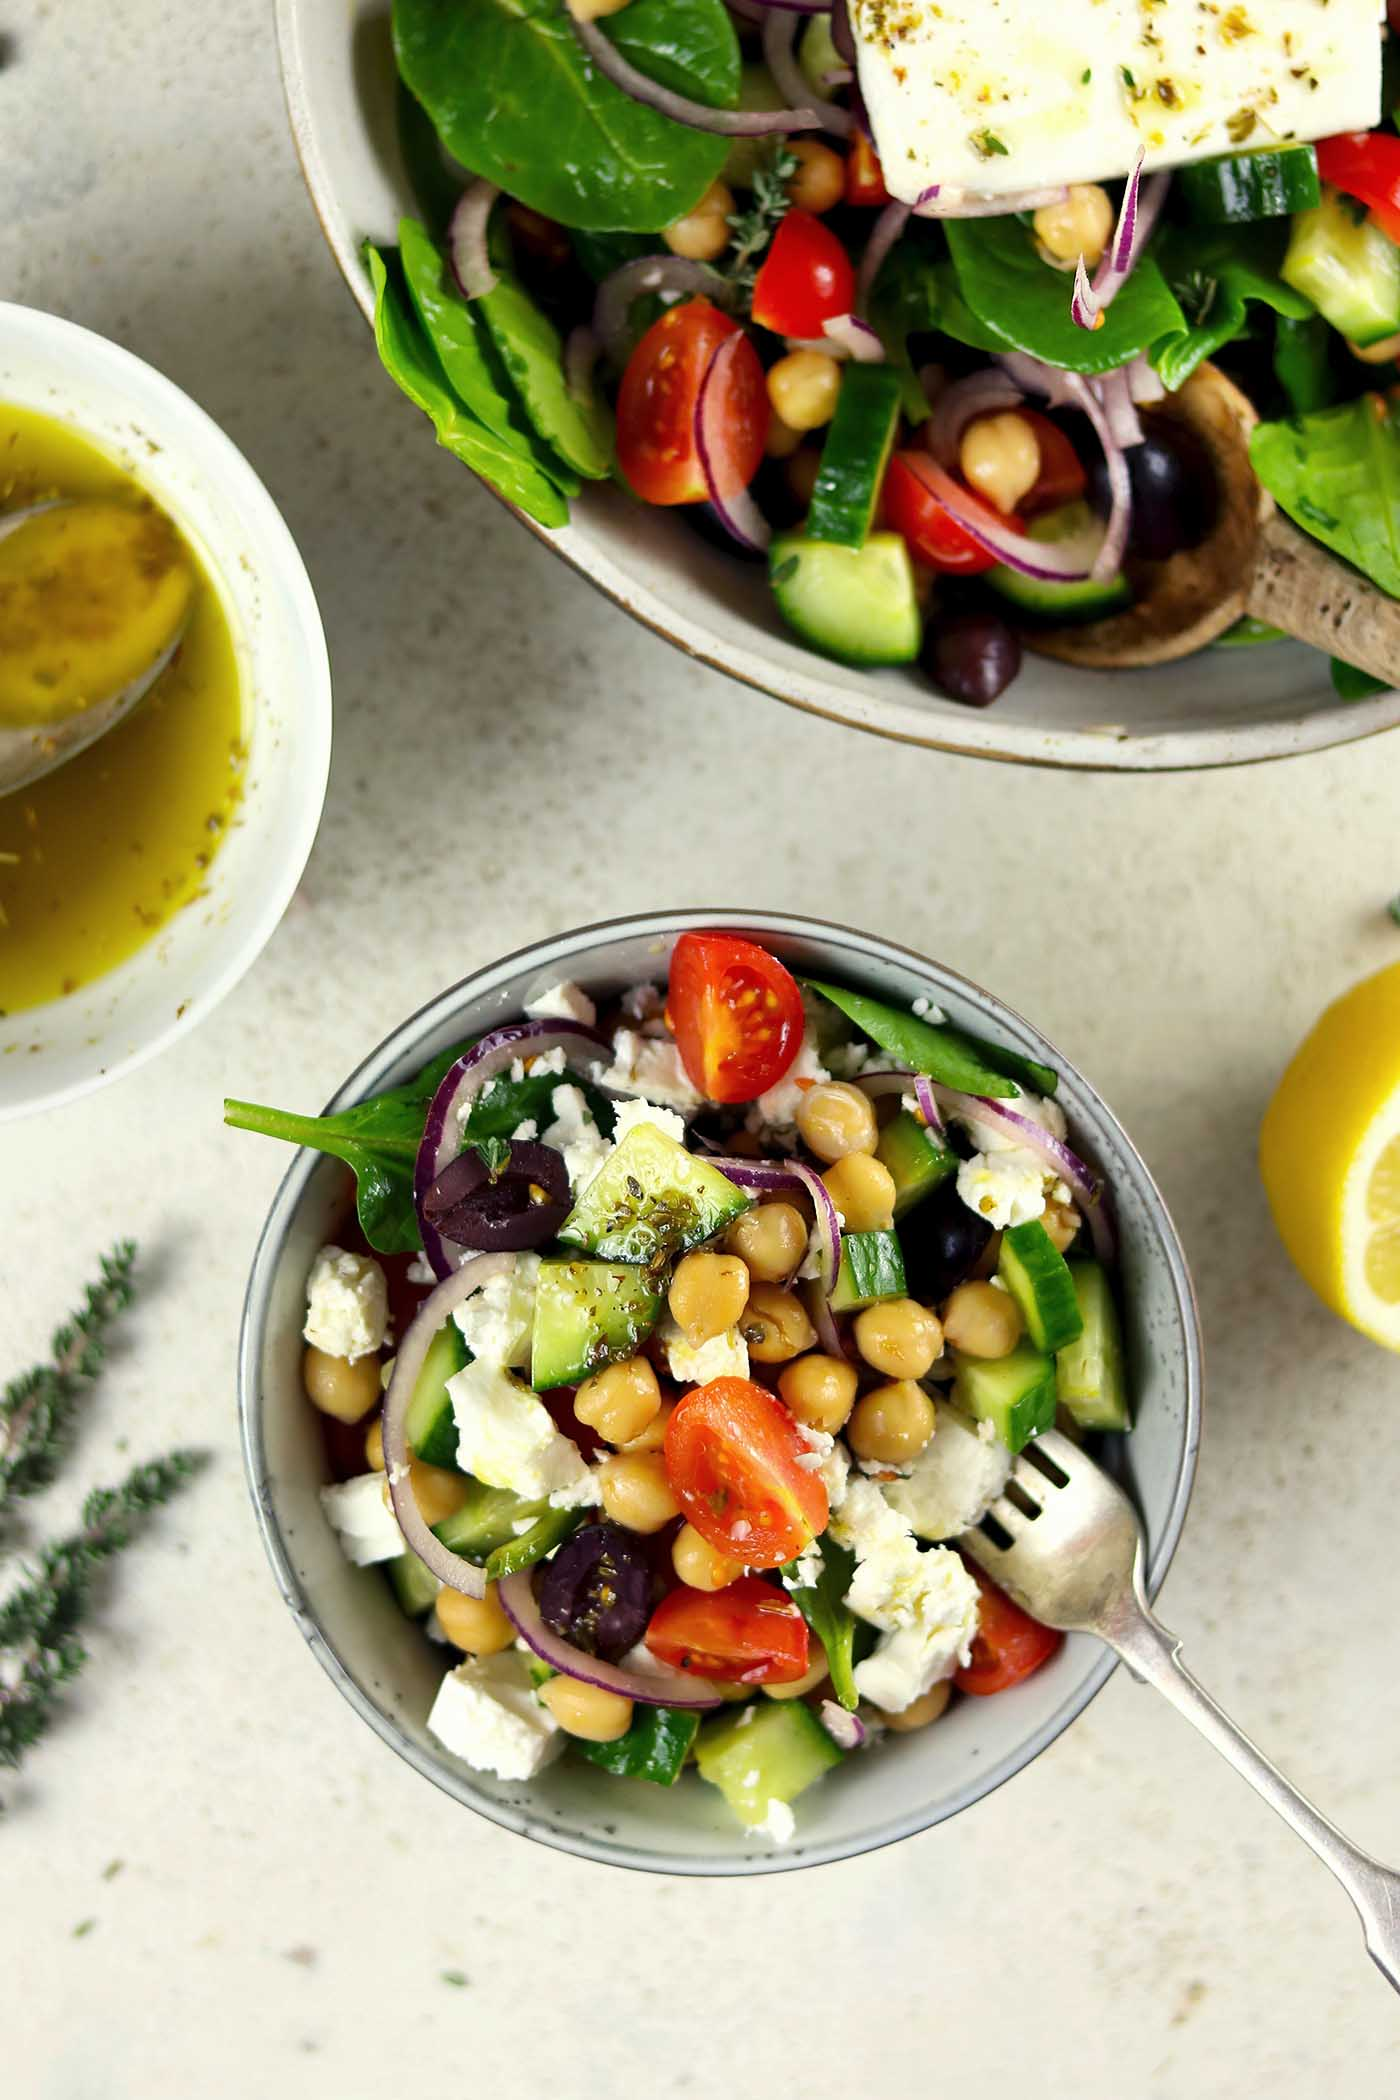 Greek Chickpea Salad with Spinach served in bowl